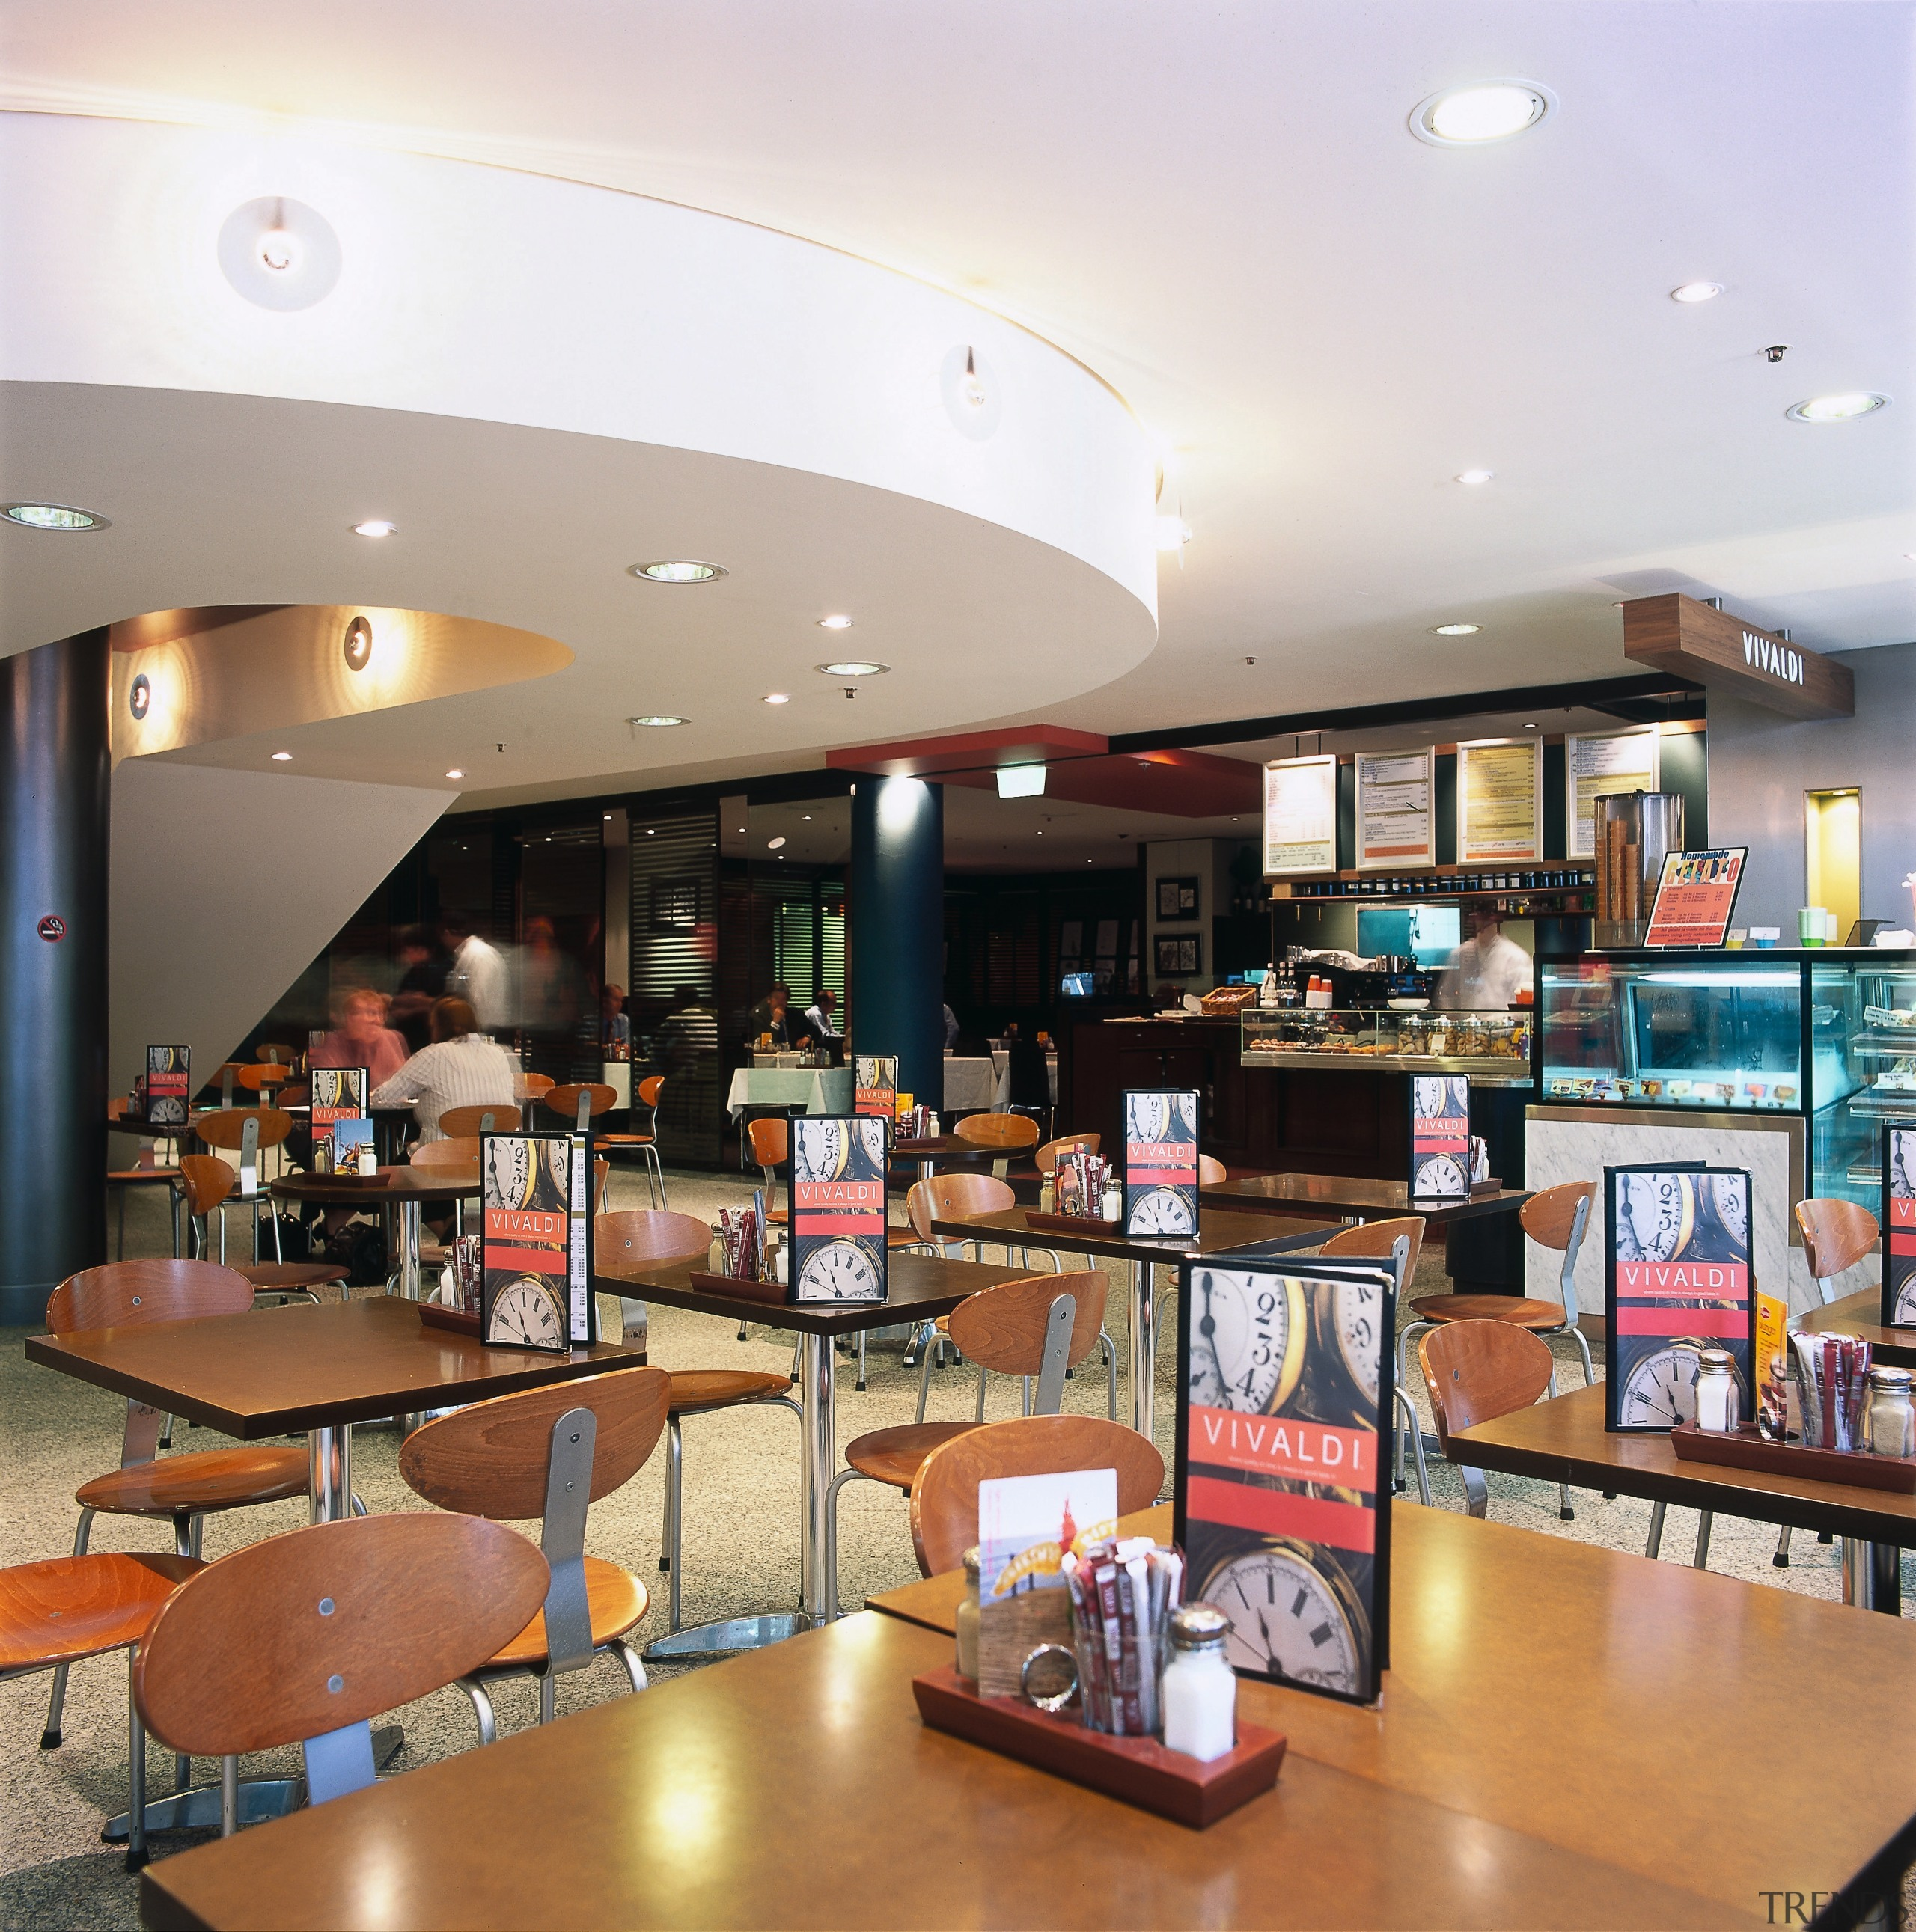 View of another eatery area inside the mall, cafeteria, food court, interior design, restaurant, white